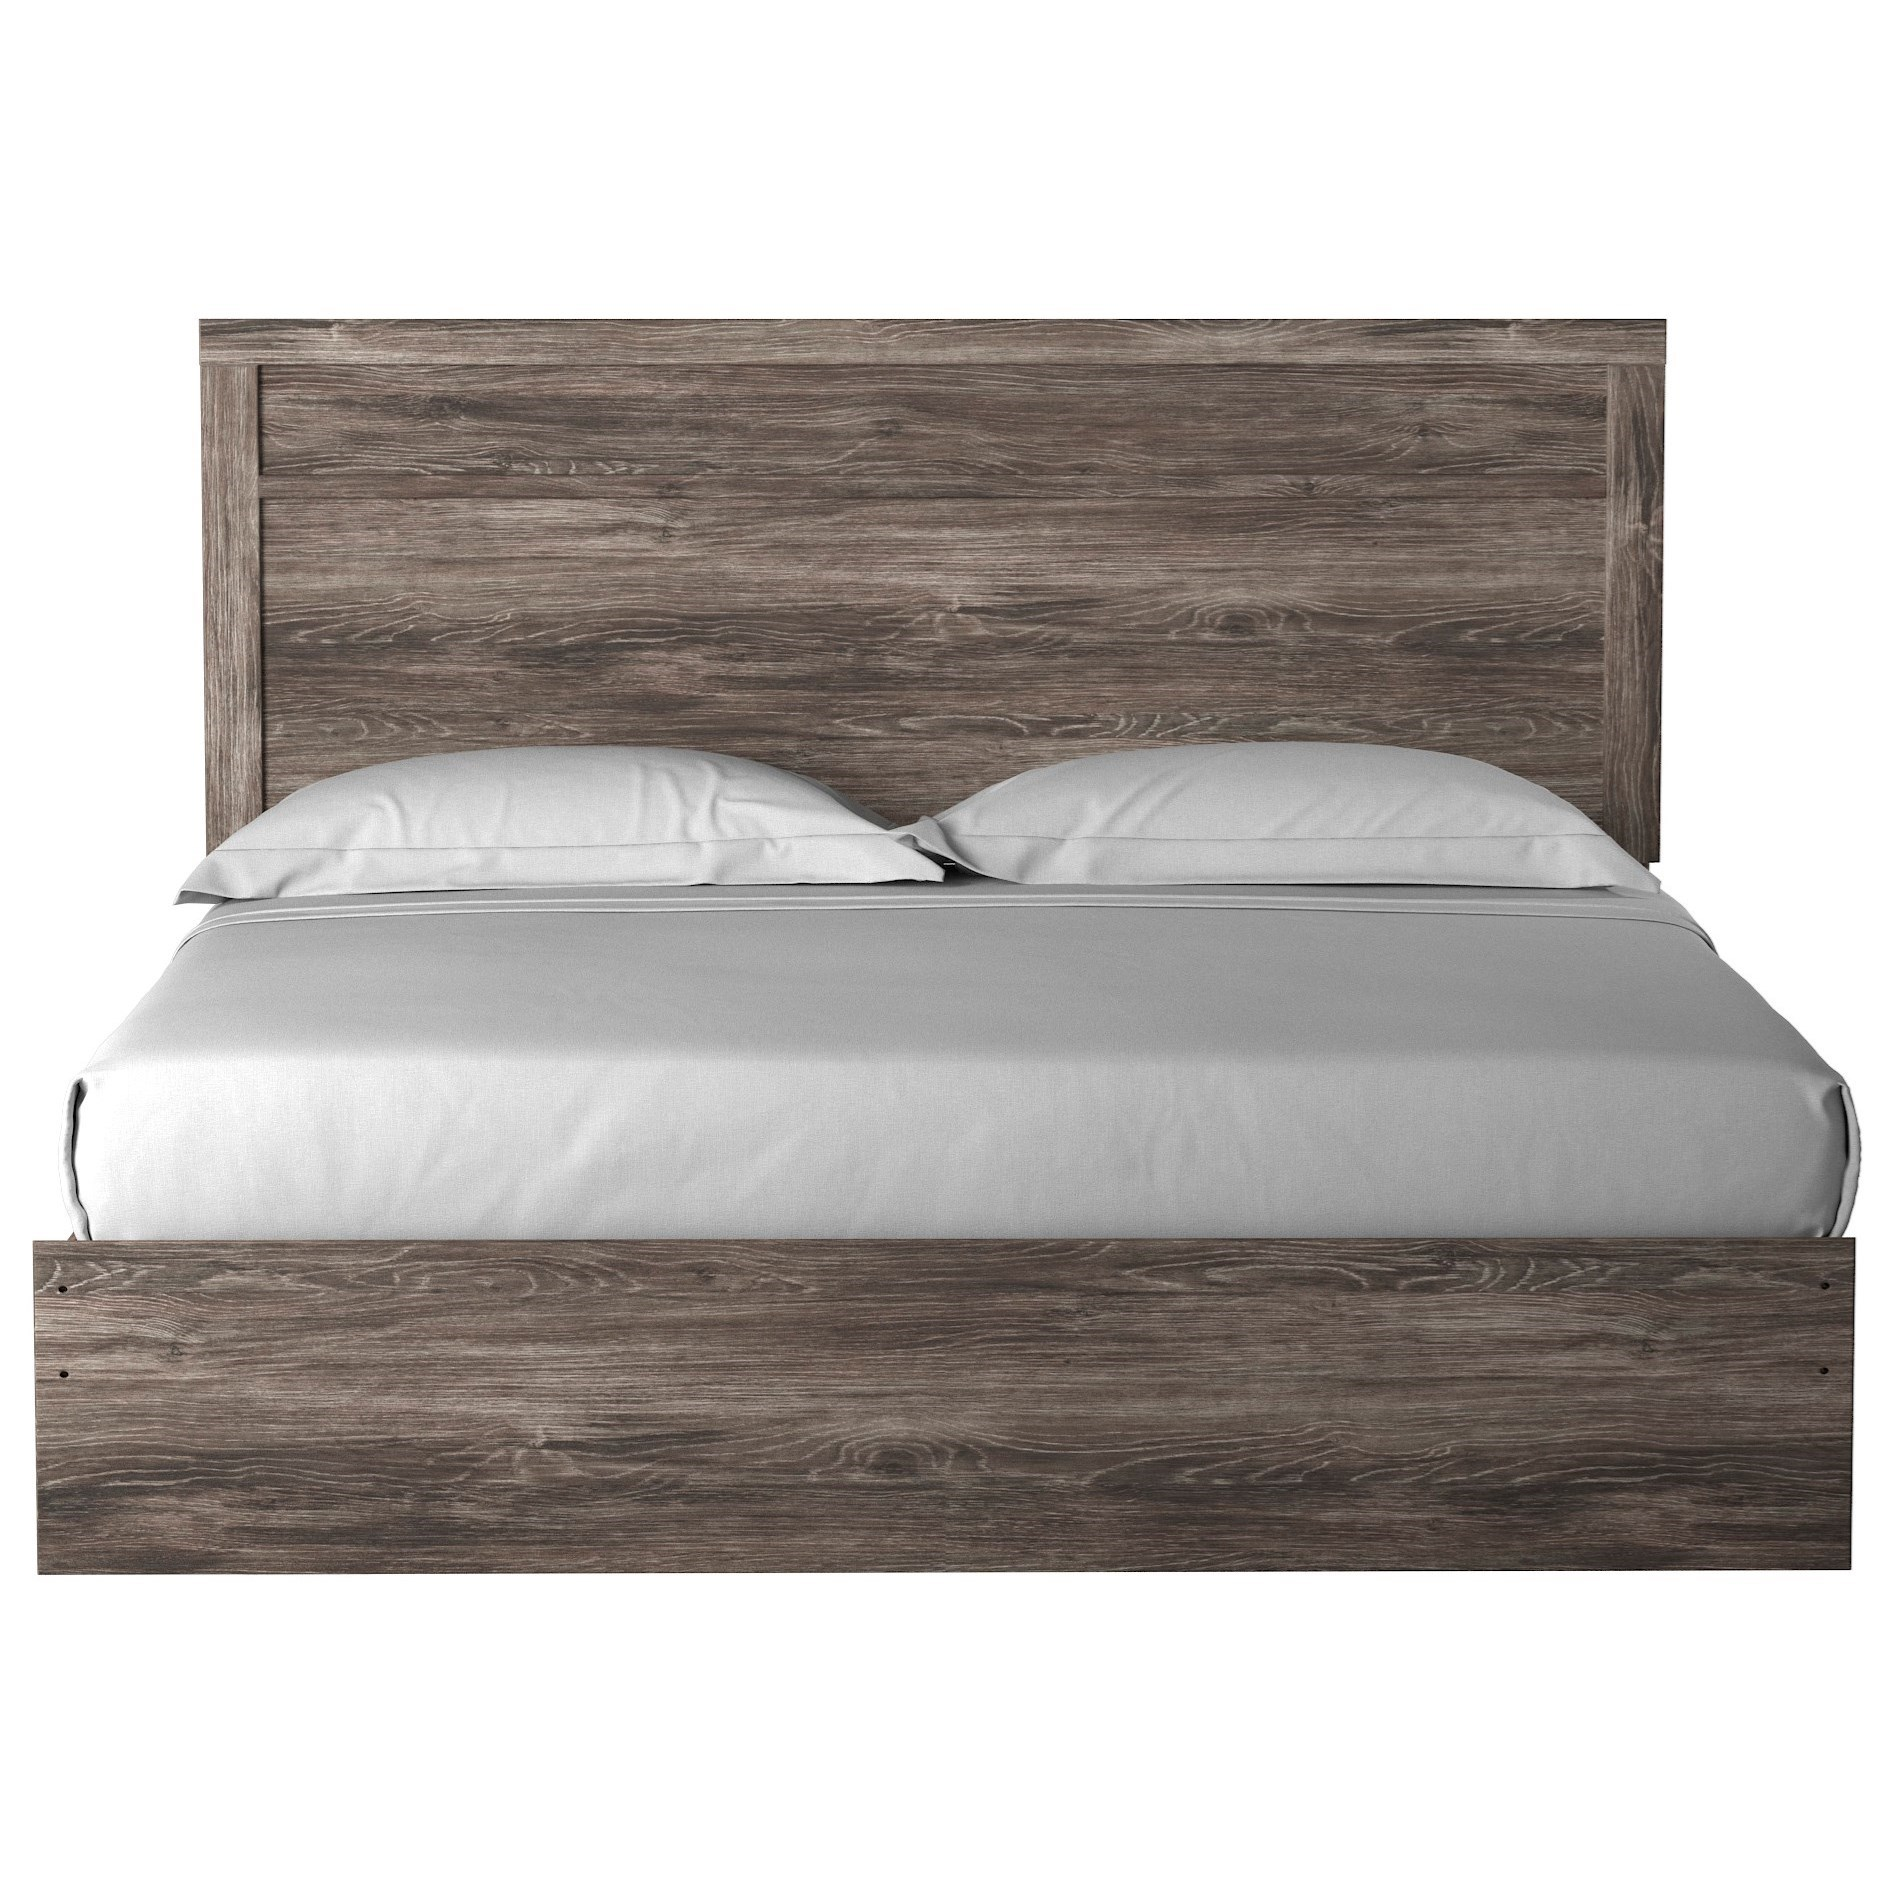 Ralinski King Panel Bed by Signature Design by Ashley at Lapeer Furniture & Mattress Center